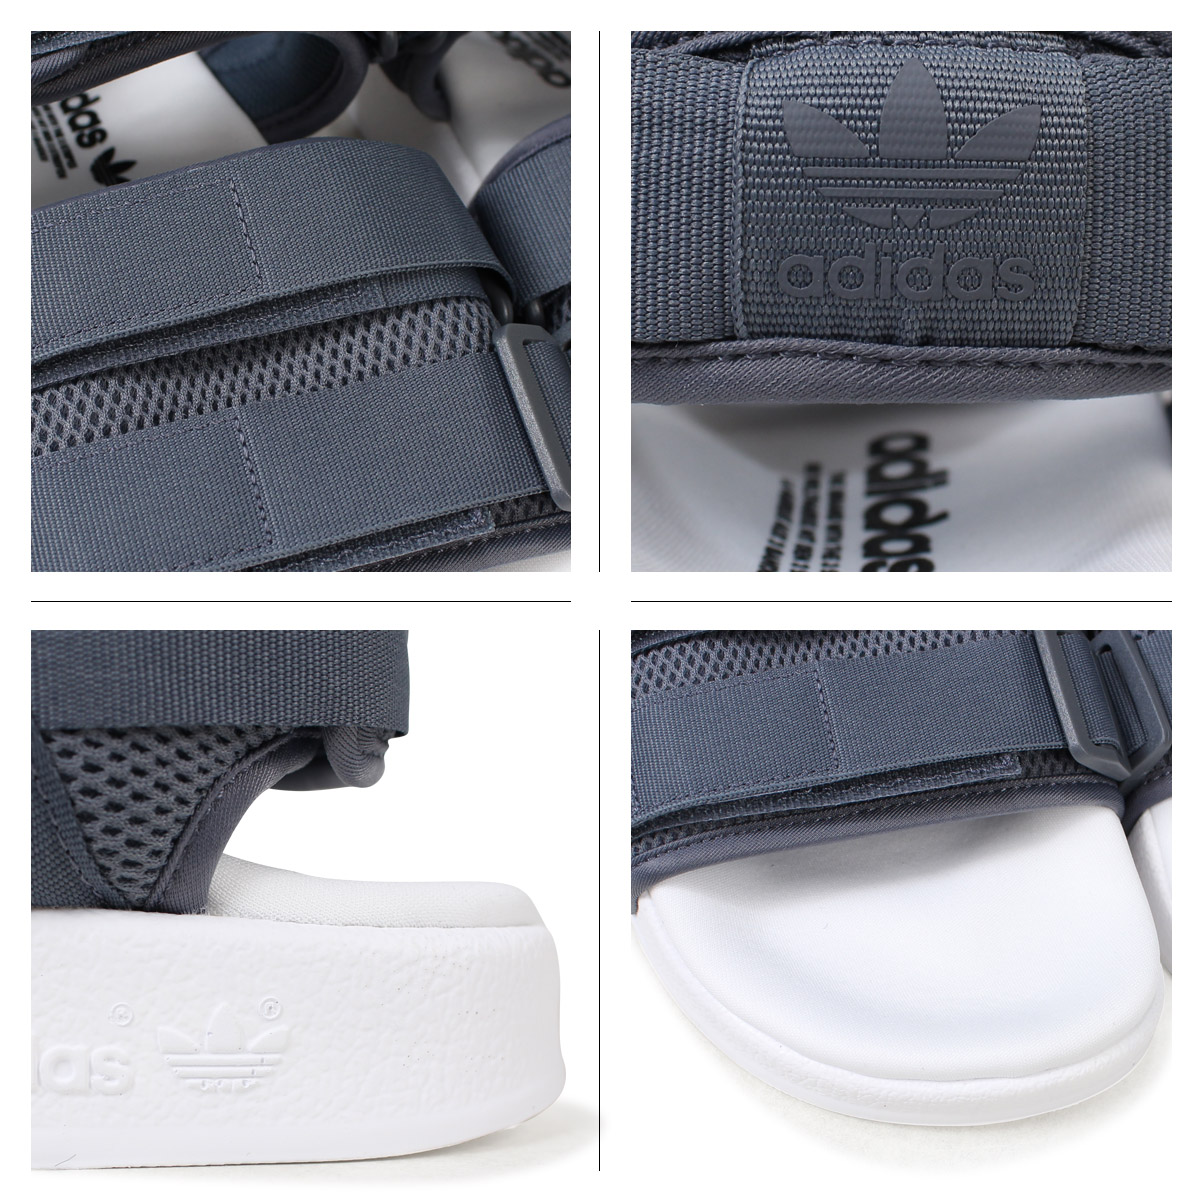 37088b69908b adidas Originals ADILETTE SANDAL 2.0W アディダスアディレッタサンダルレディースメンズ CQ2672 gray  originals  load planned Shinnyu load in reservation product ...